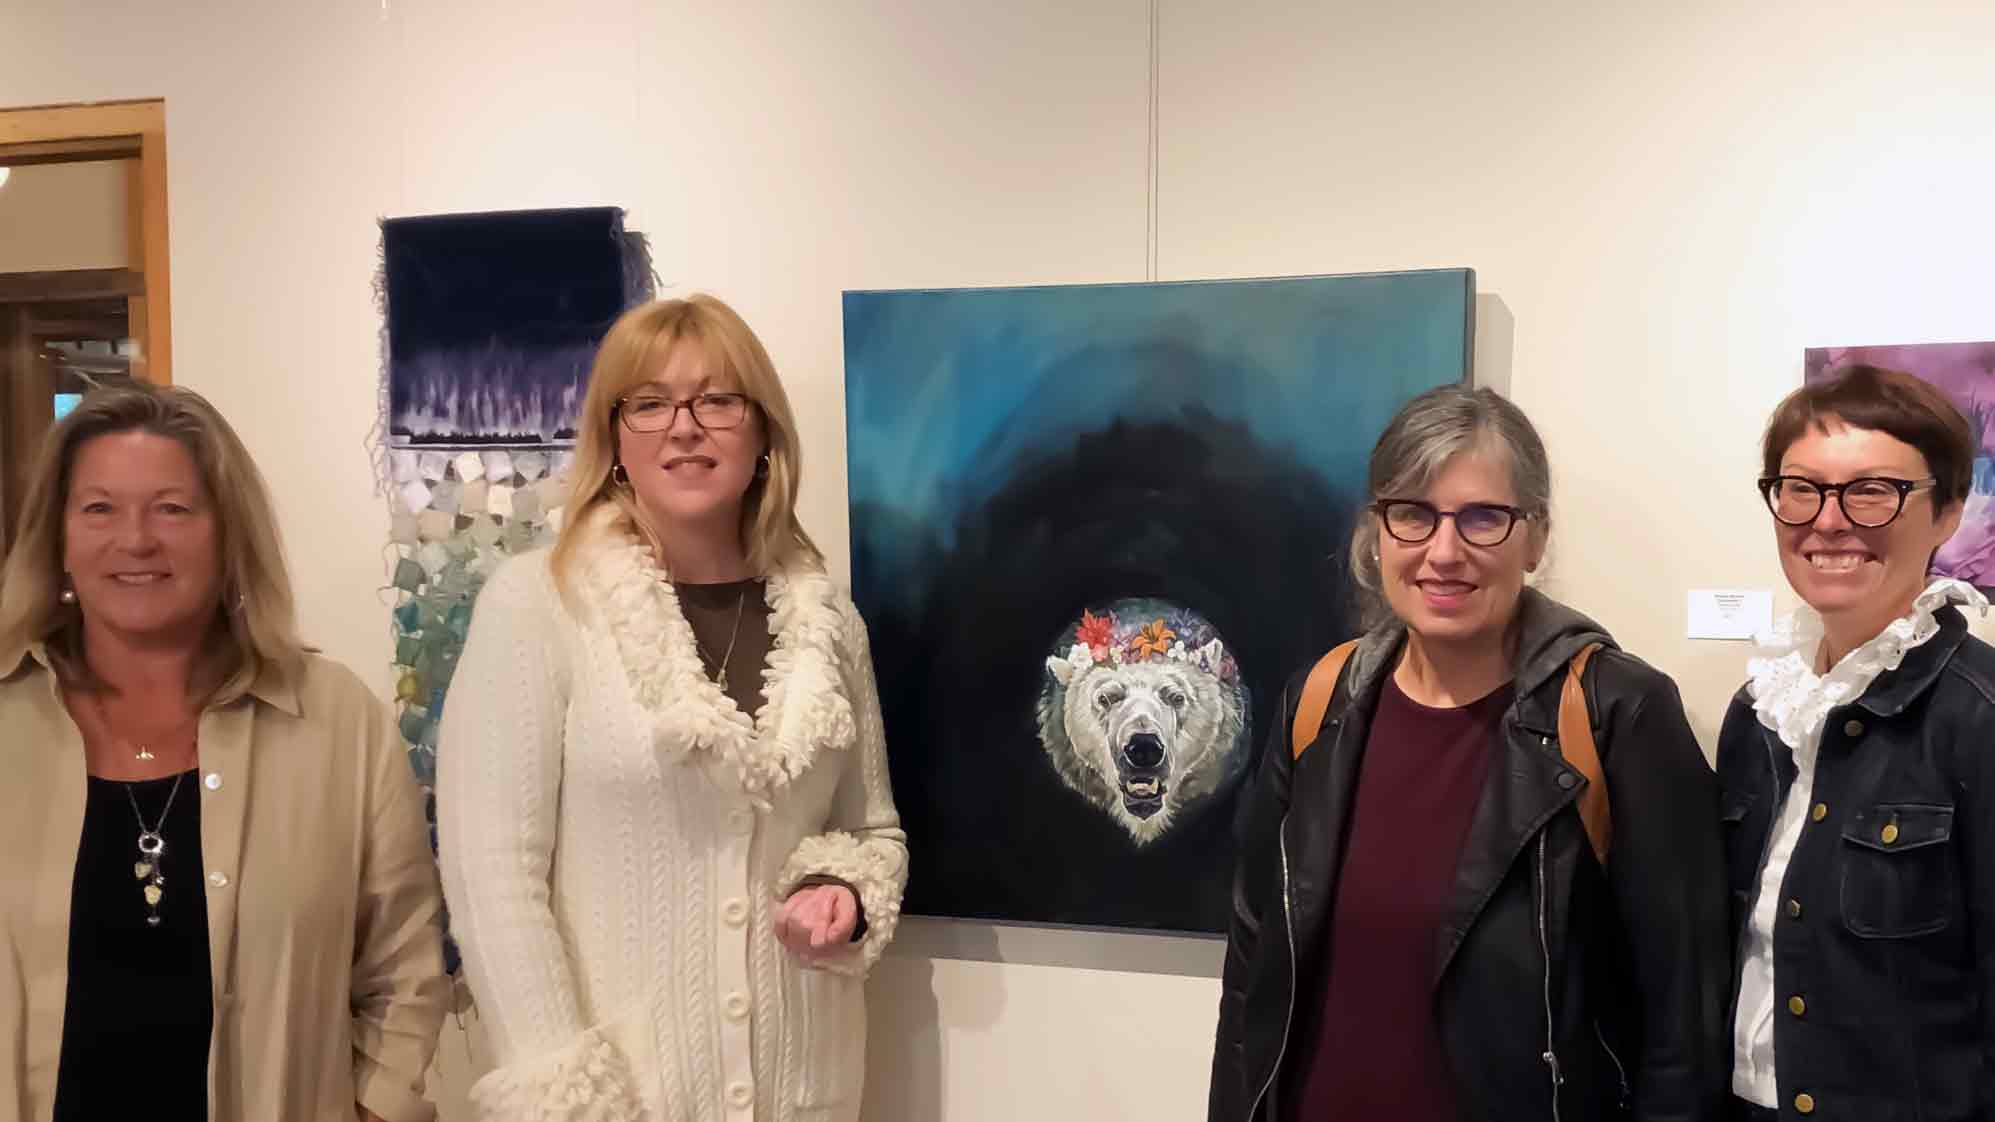 Jurors  Sue Powell ,  Regan Hayward , artist  Christine Montague,  and juror  Jill Price  with   Canadian Flower Crown     at the  Jurors walk,   Headwaters Arts Gallery , Alton Mill, Ontario, Canada.